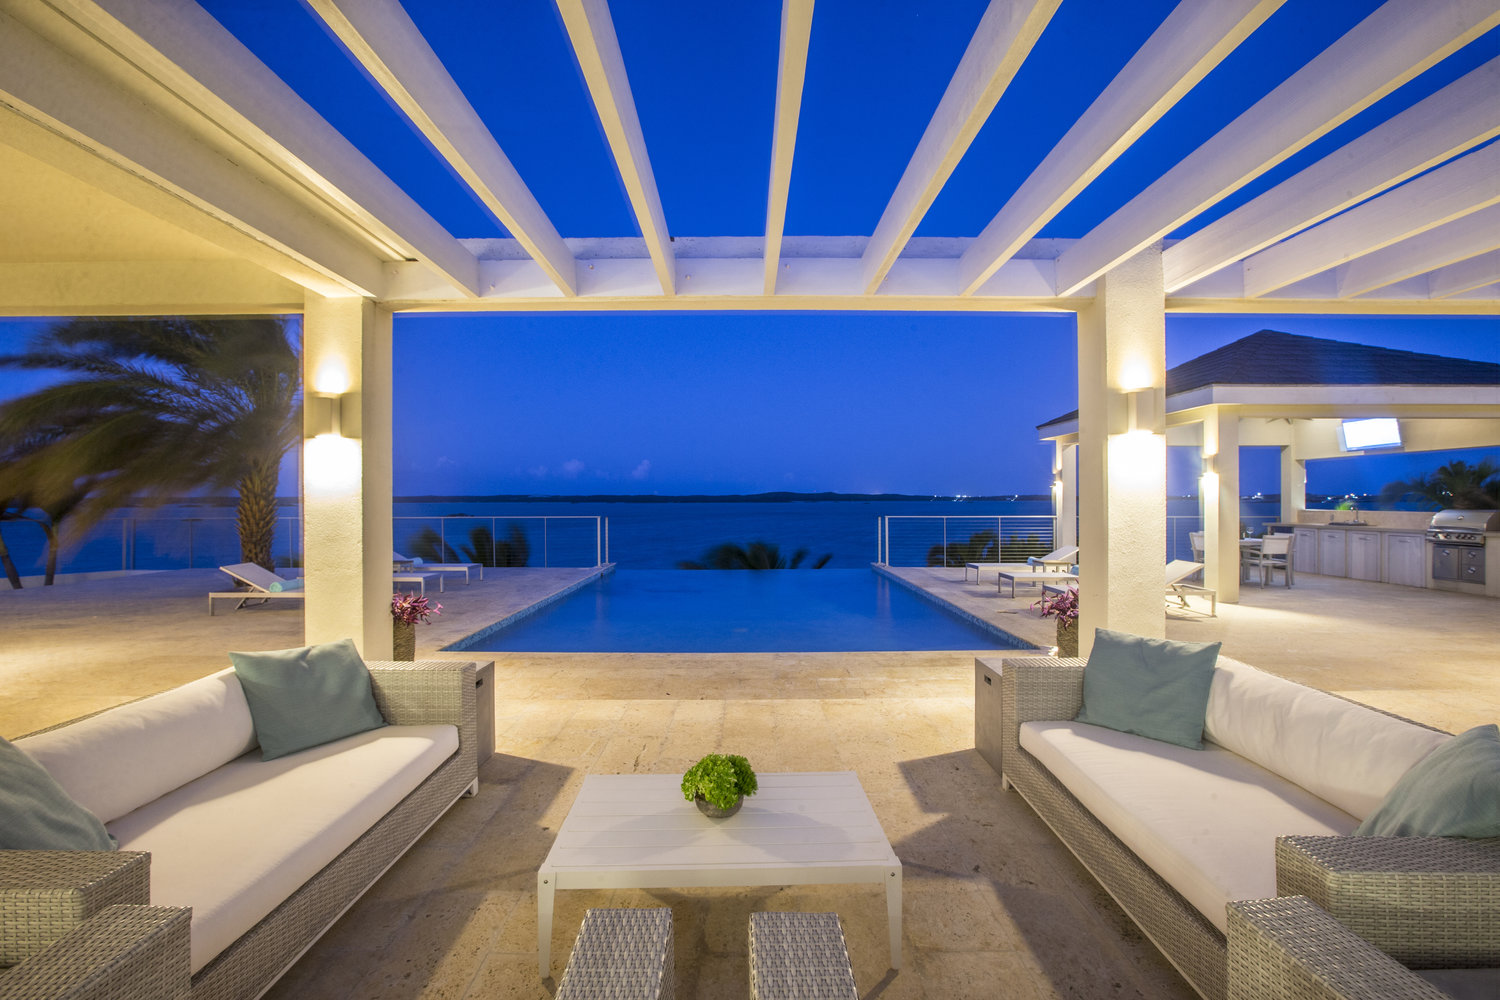 Pergola with night lighting and infinity edge pool